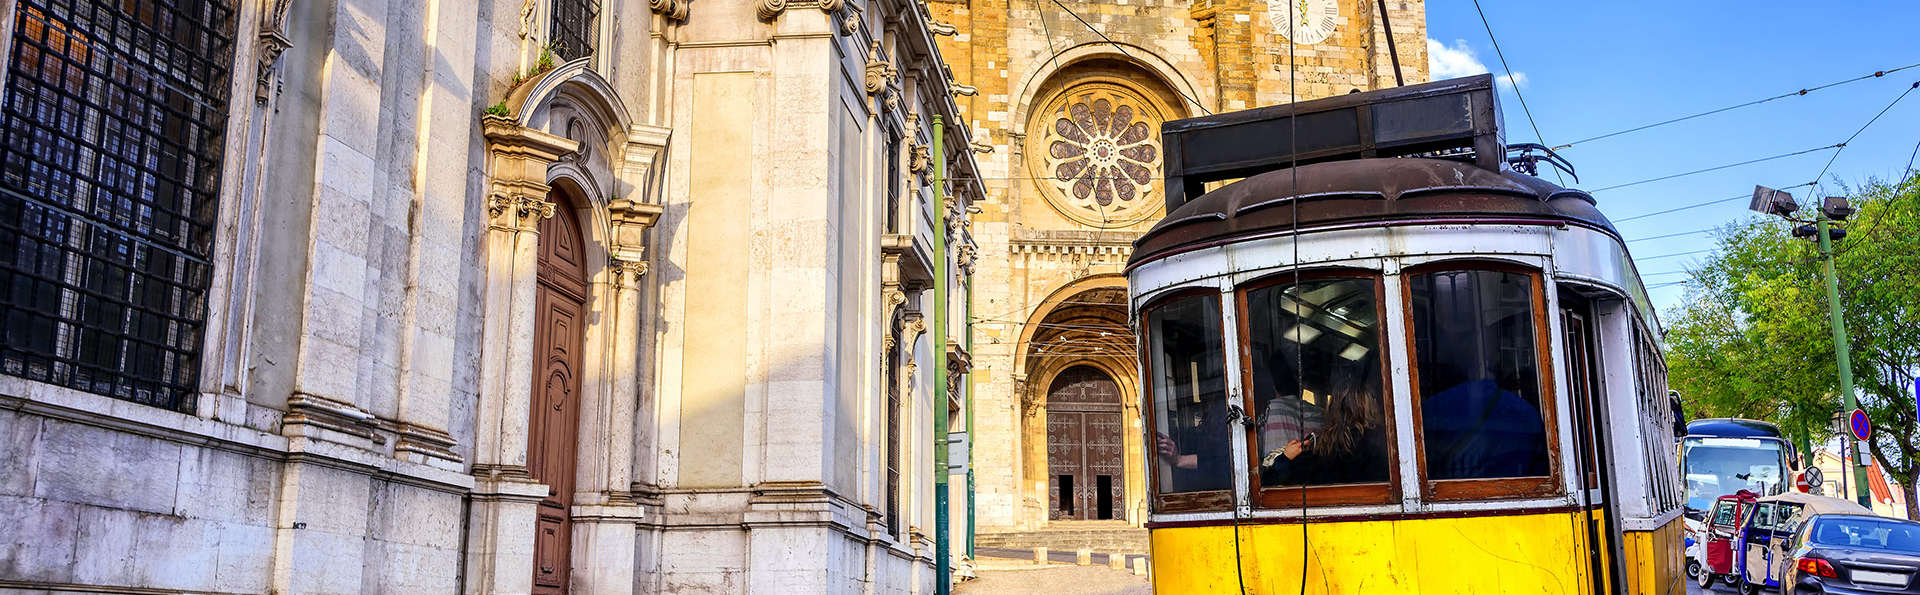 Czar Lisbon Hotel by Ymspyra - EDIT_destination3.jpg